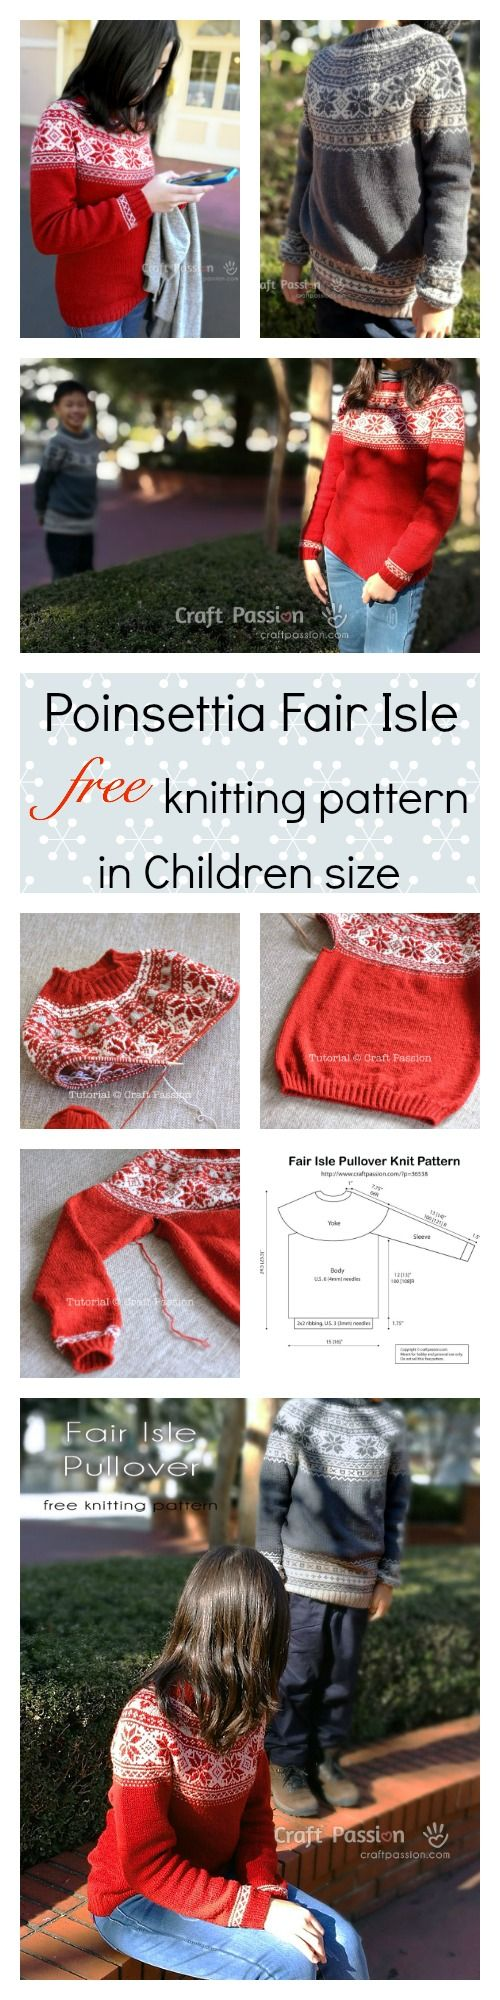 Fair Isle Pullover - Children Size - Free Knitting Pattern | Craft Passion